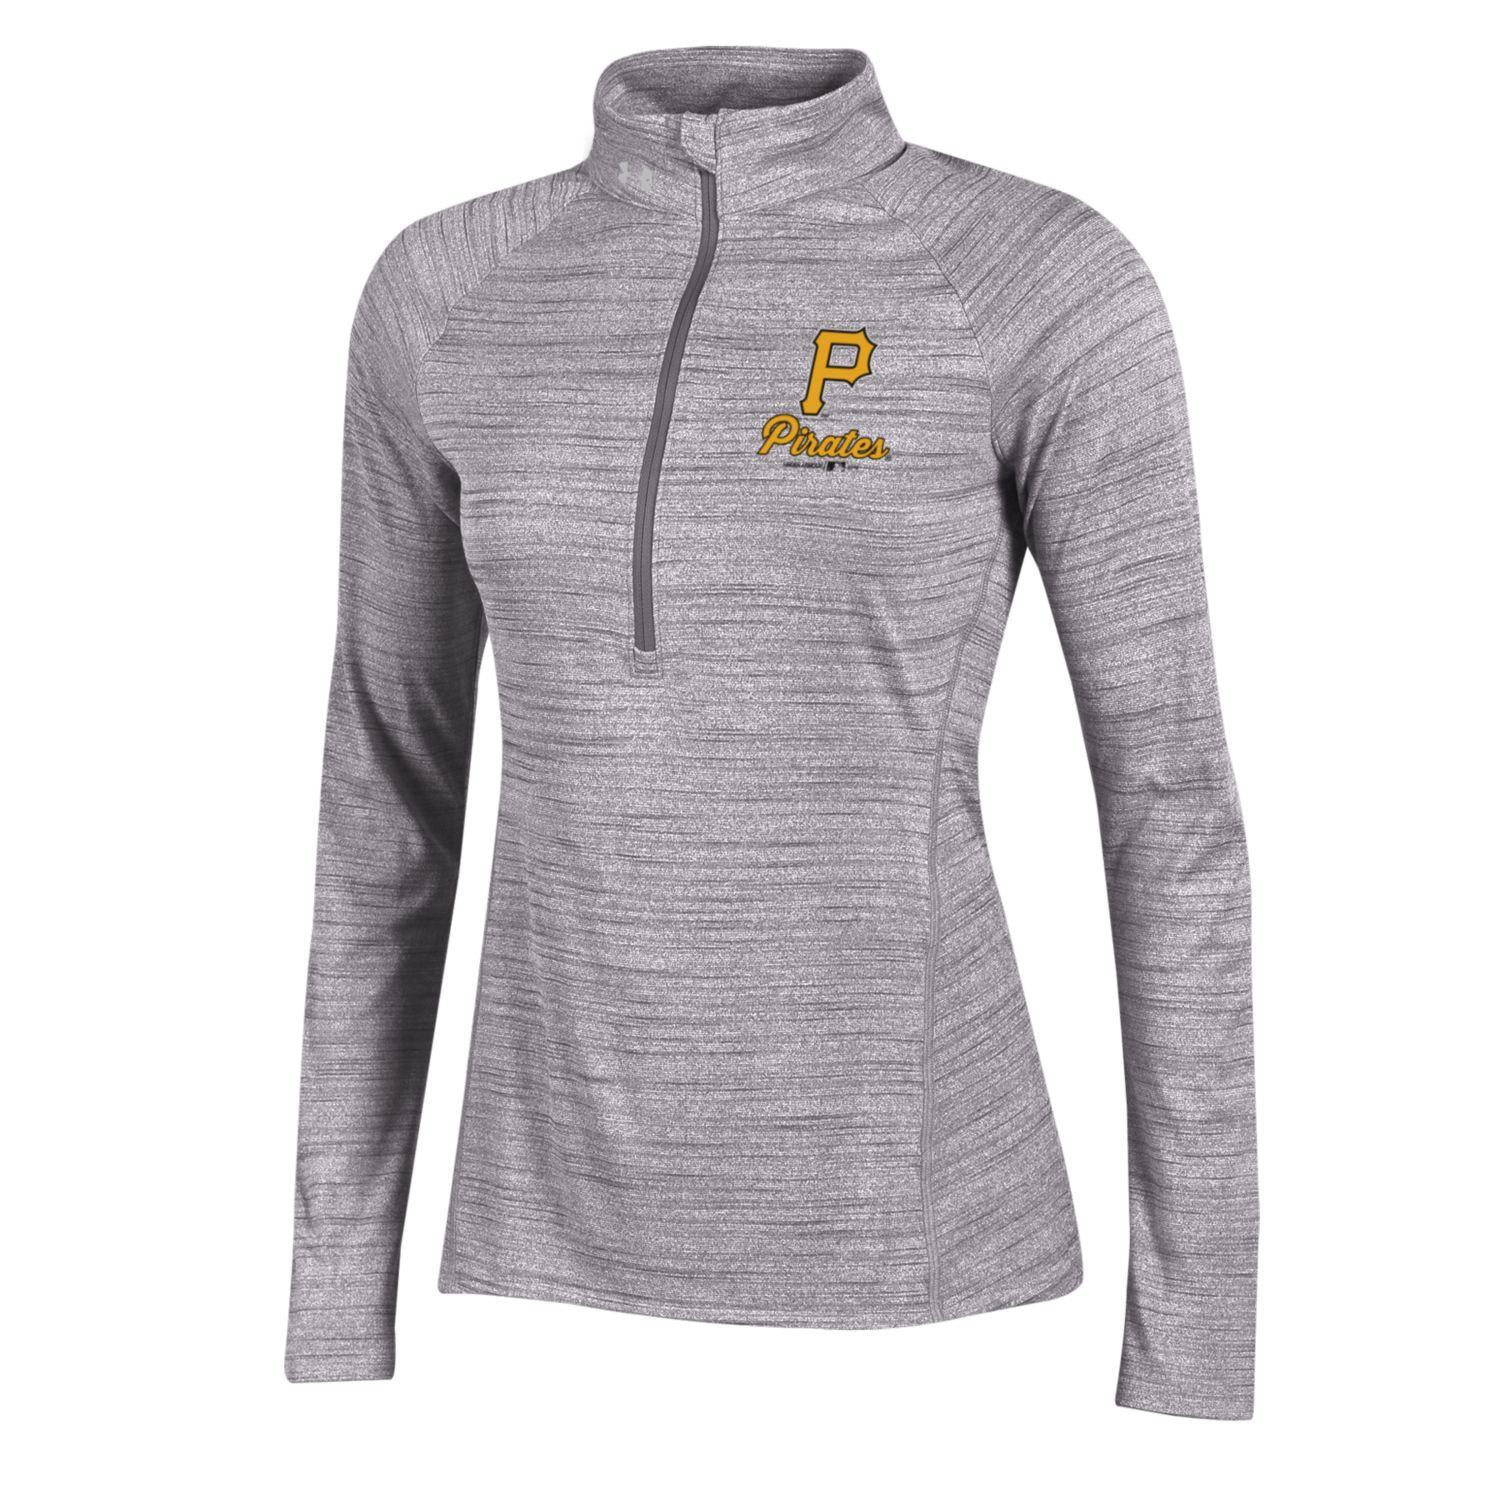 Pittsburgh Pirates Under Armour Women's Space Tech Performance Half-Zip Jacket - Heathered Gray